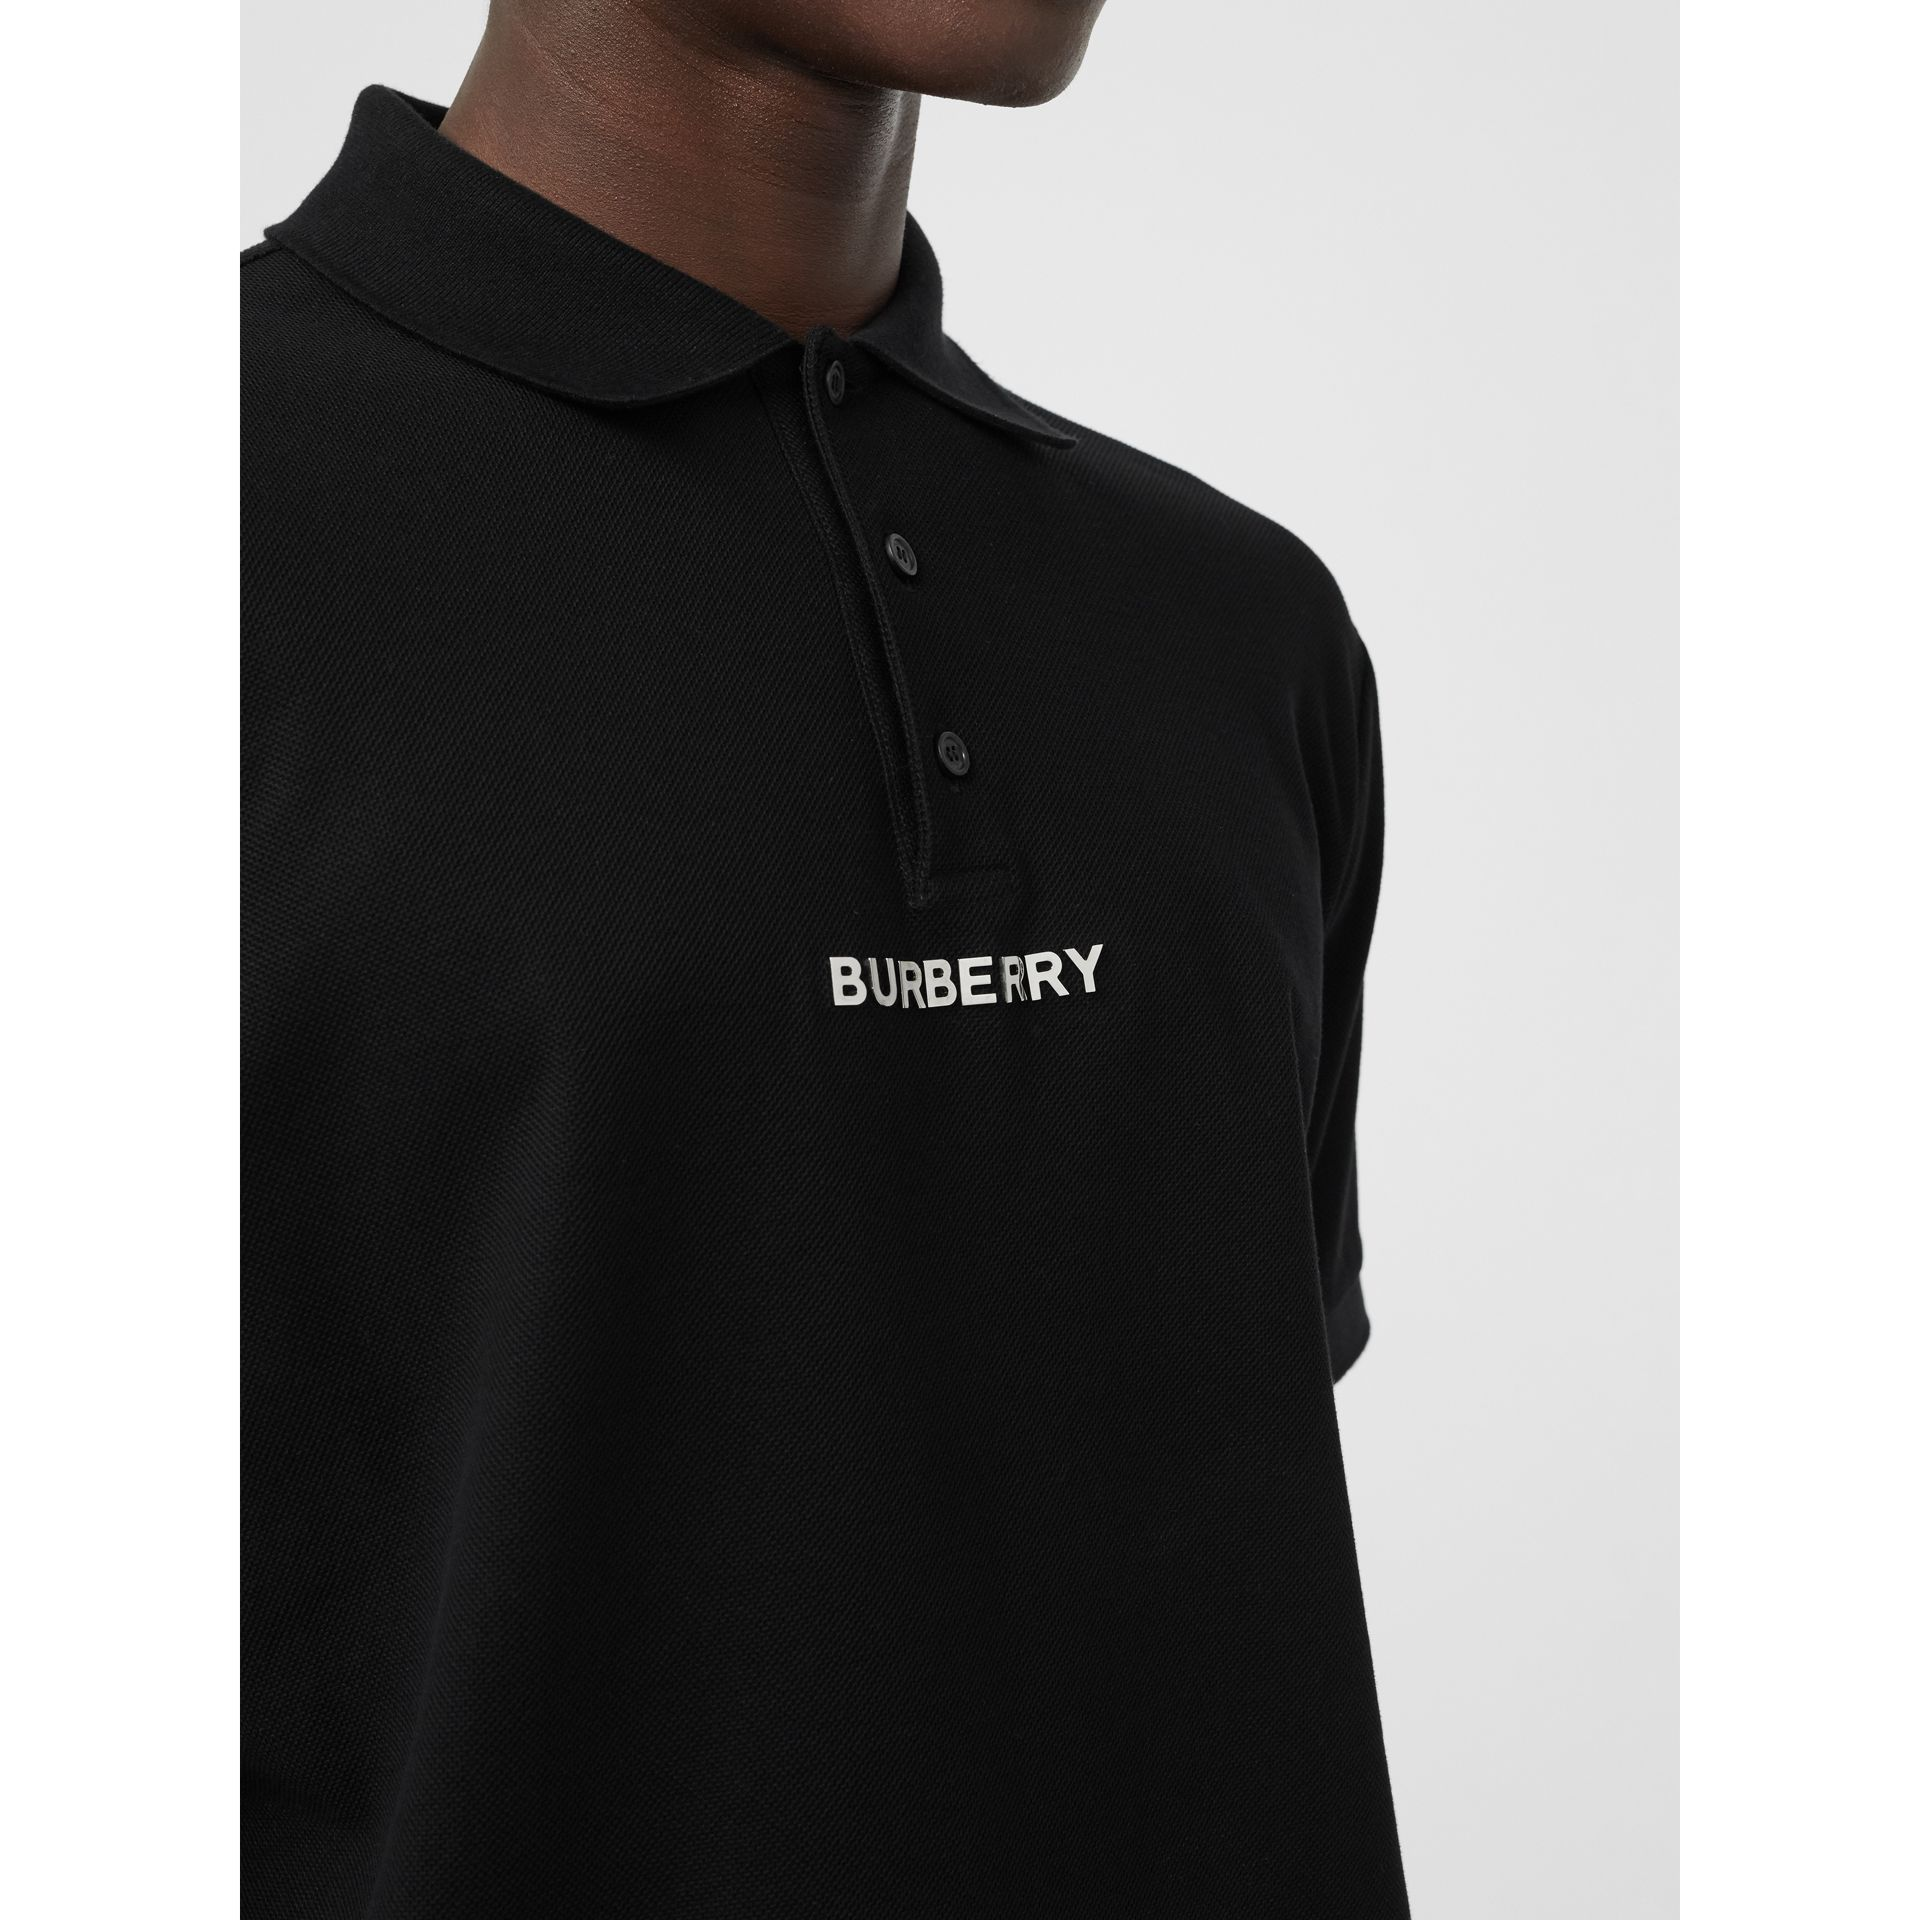 Embellished Logo Polo Shirt in Black - Men | Burberry Singapore - gallery image 1